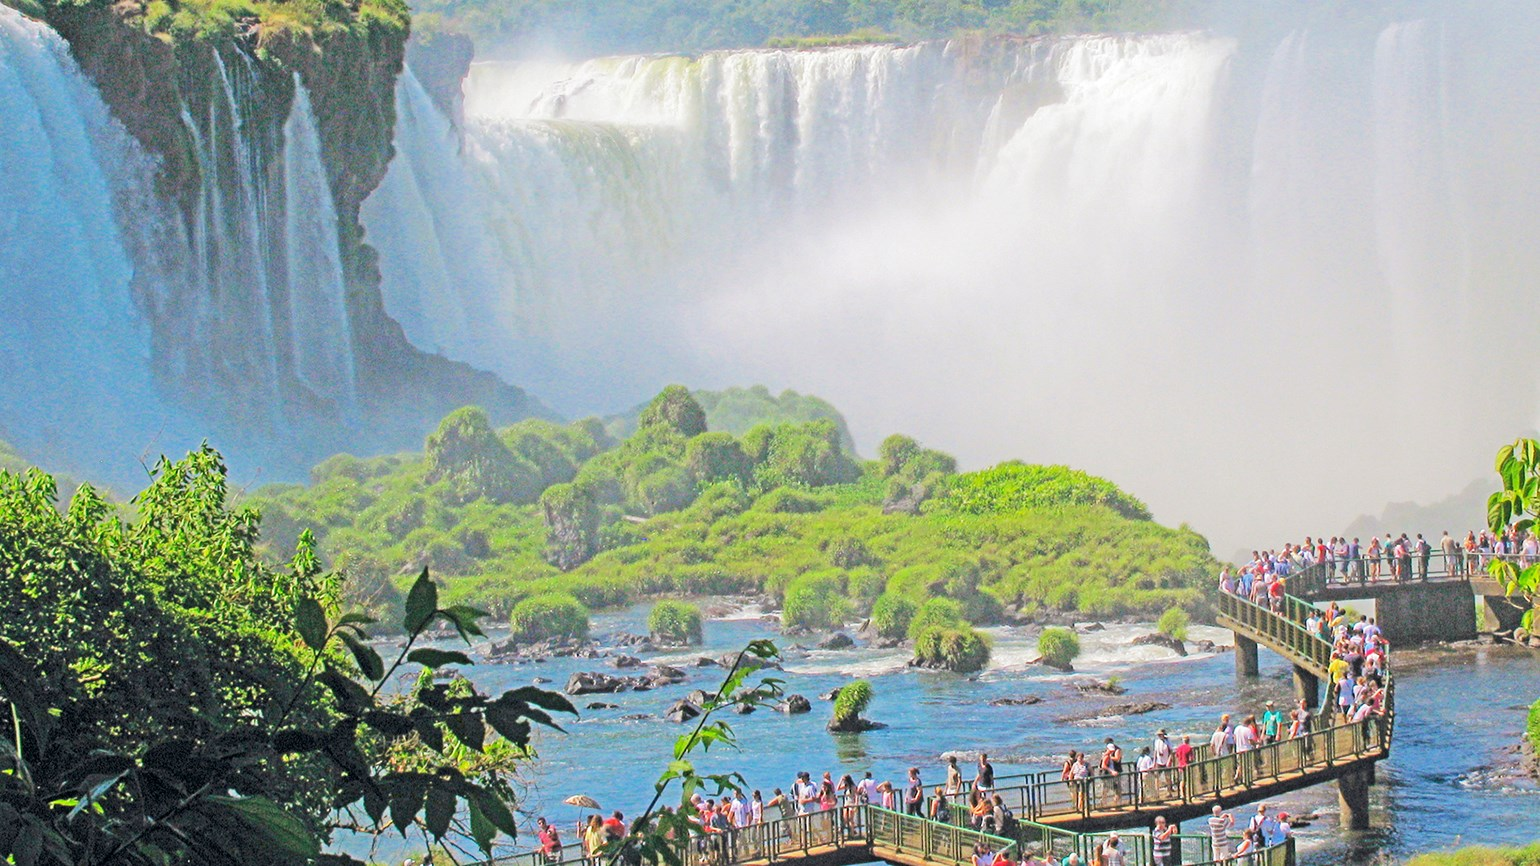 Argentina and Brazil tour from $1999